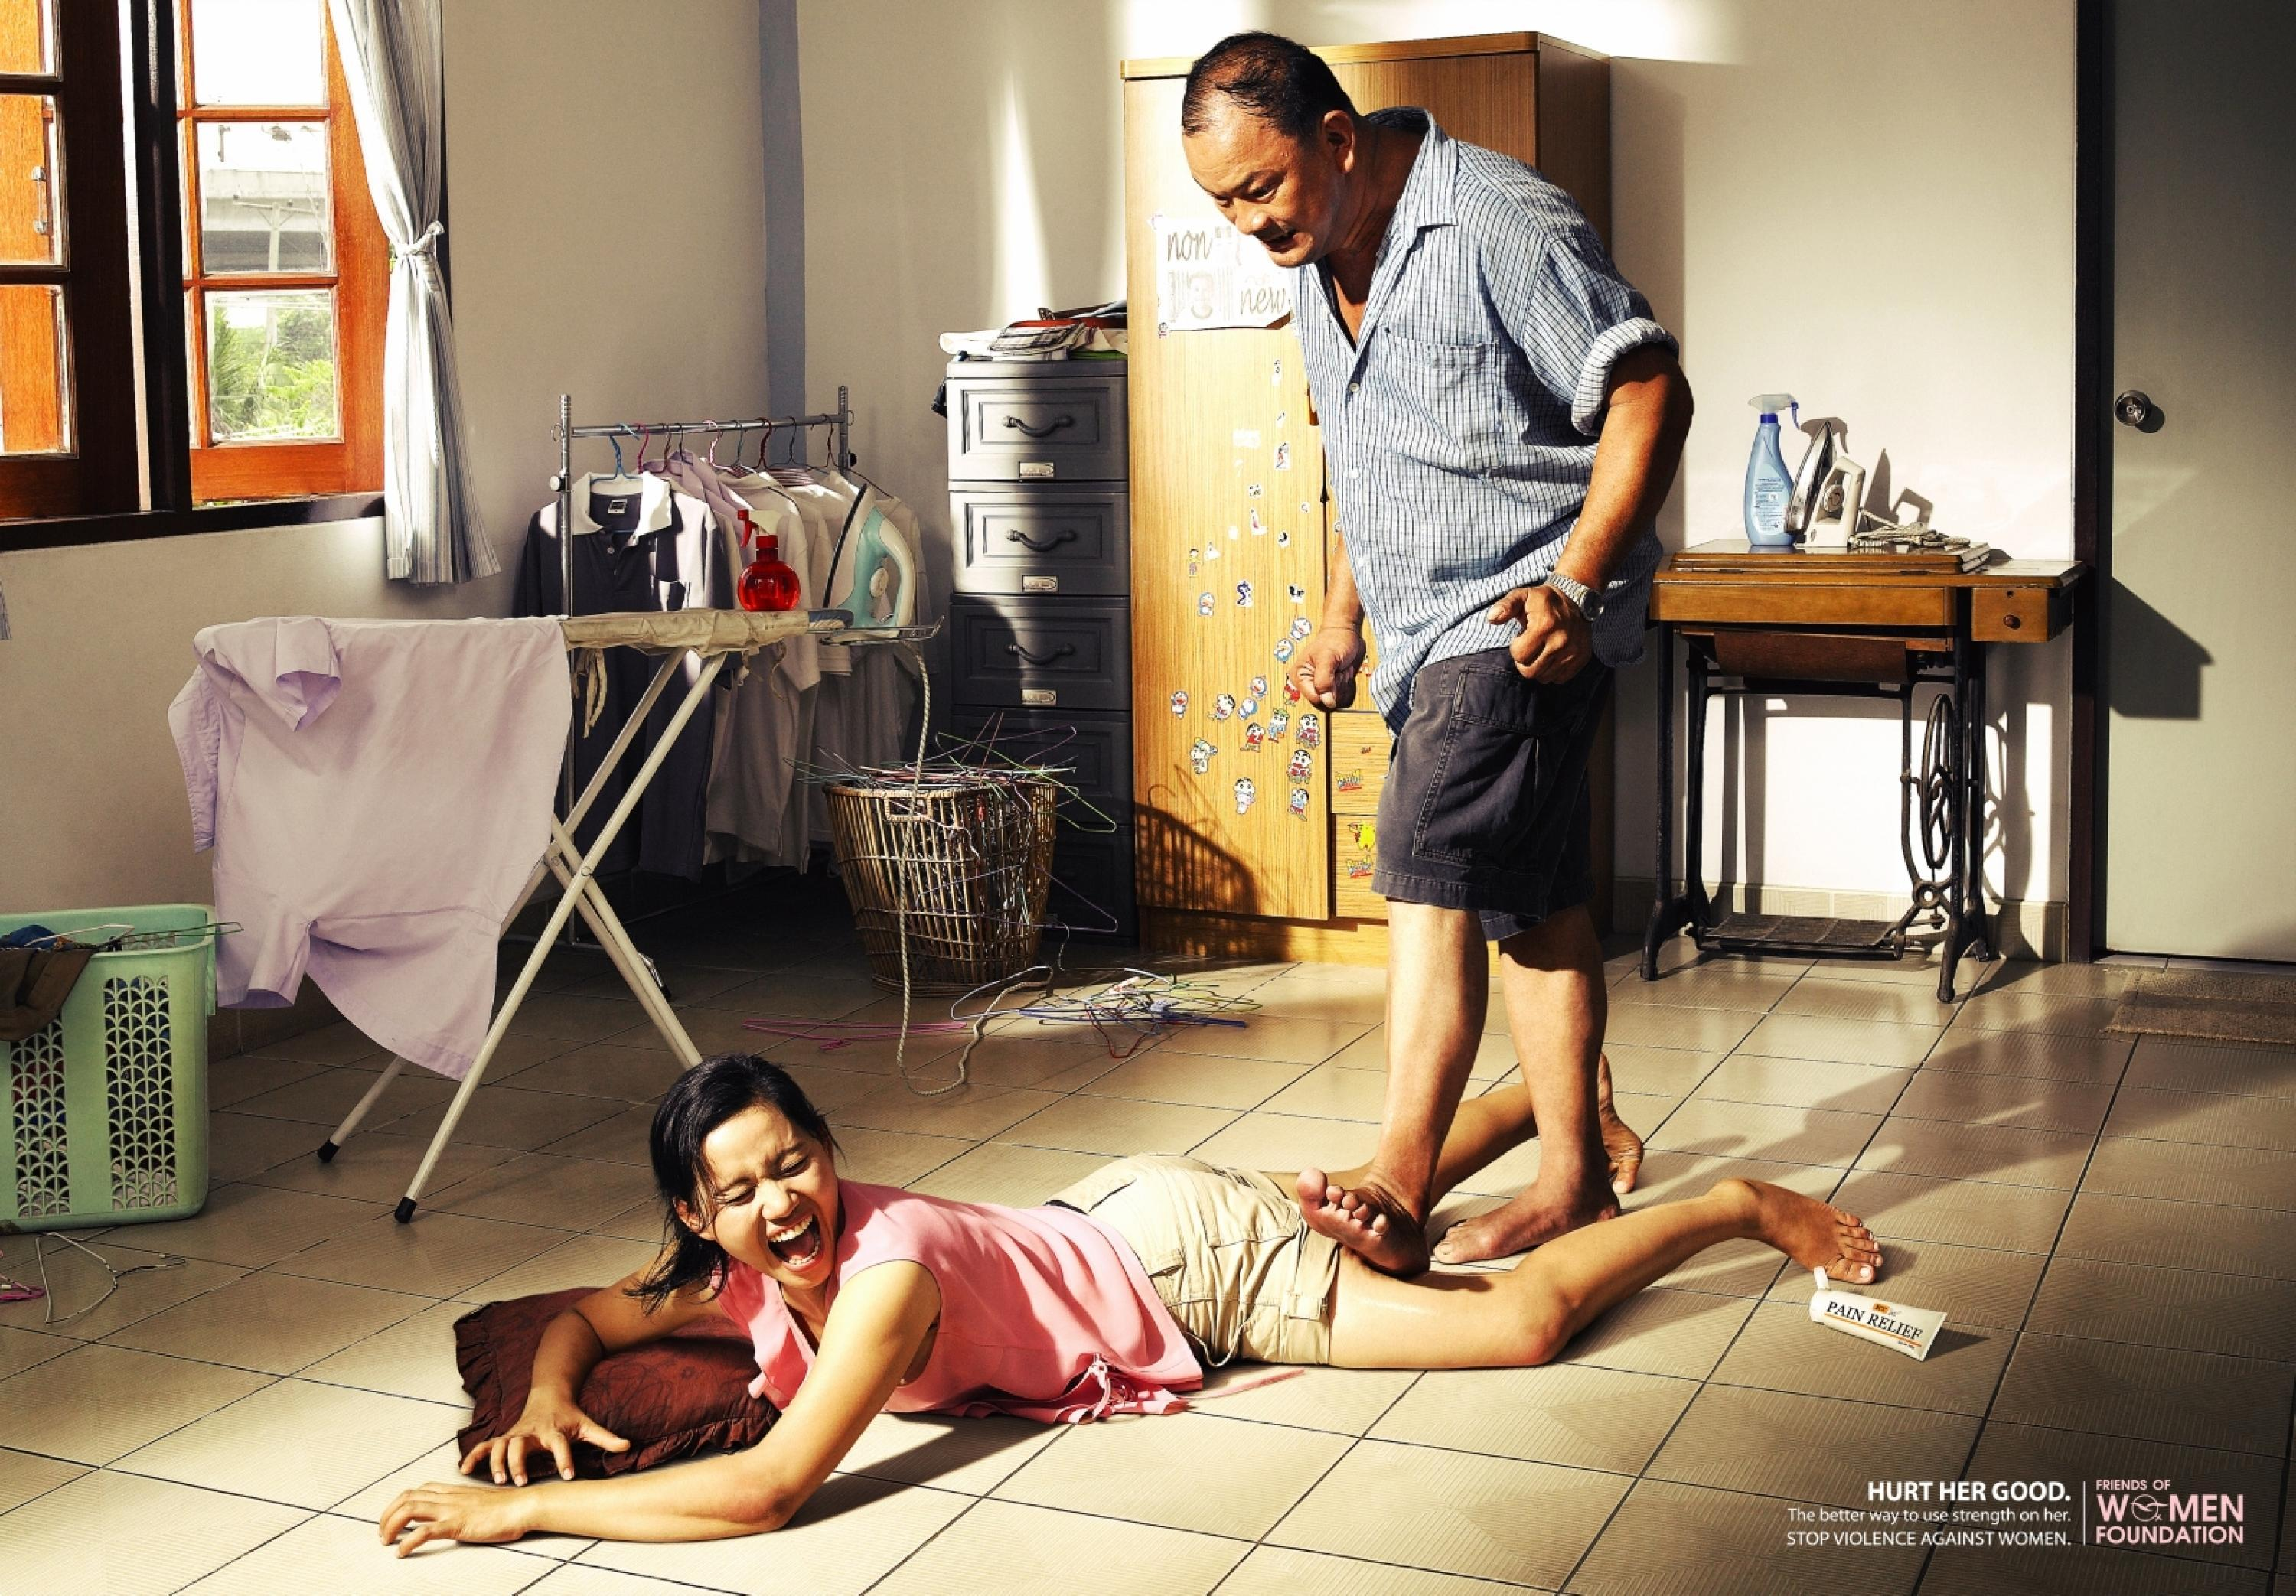 Why Is The Advertising Industry Still Promoting Violence Against Women